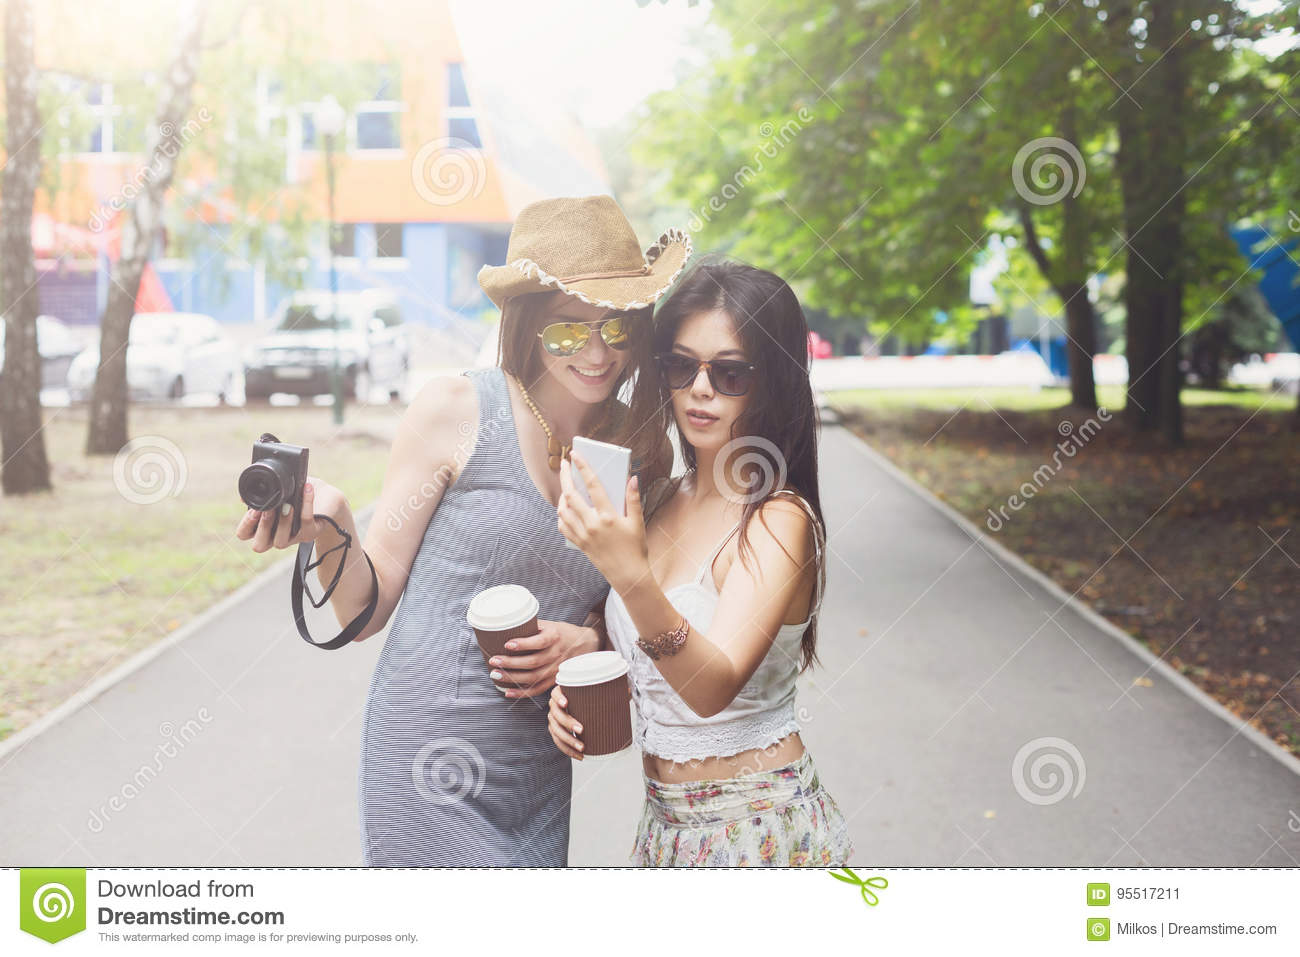 d6a0dba851 Two girls friends take selfie with smartphone. Young female tourists in  boho chic fashion clothes